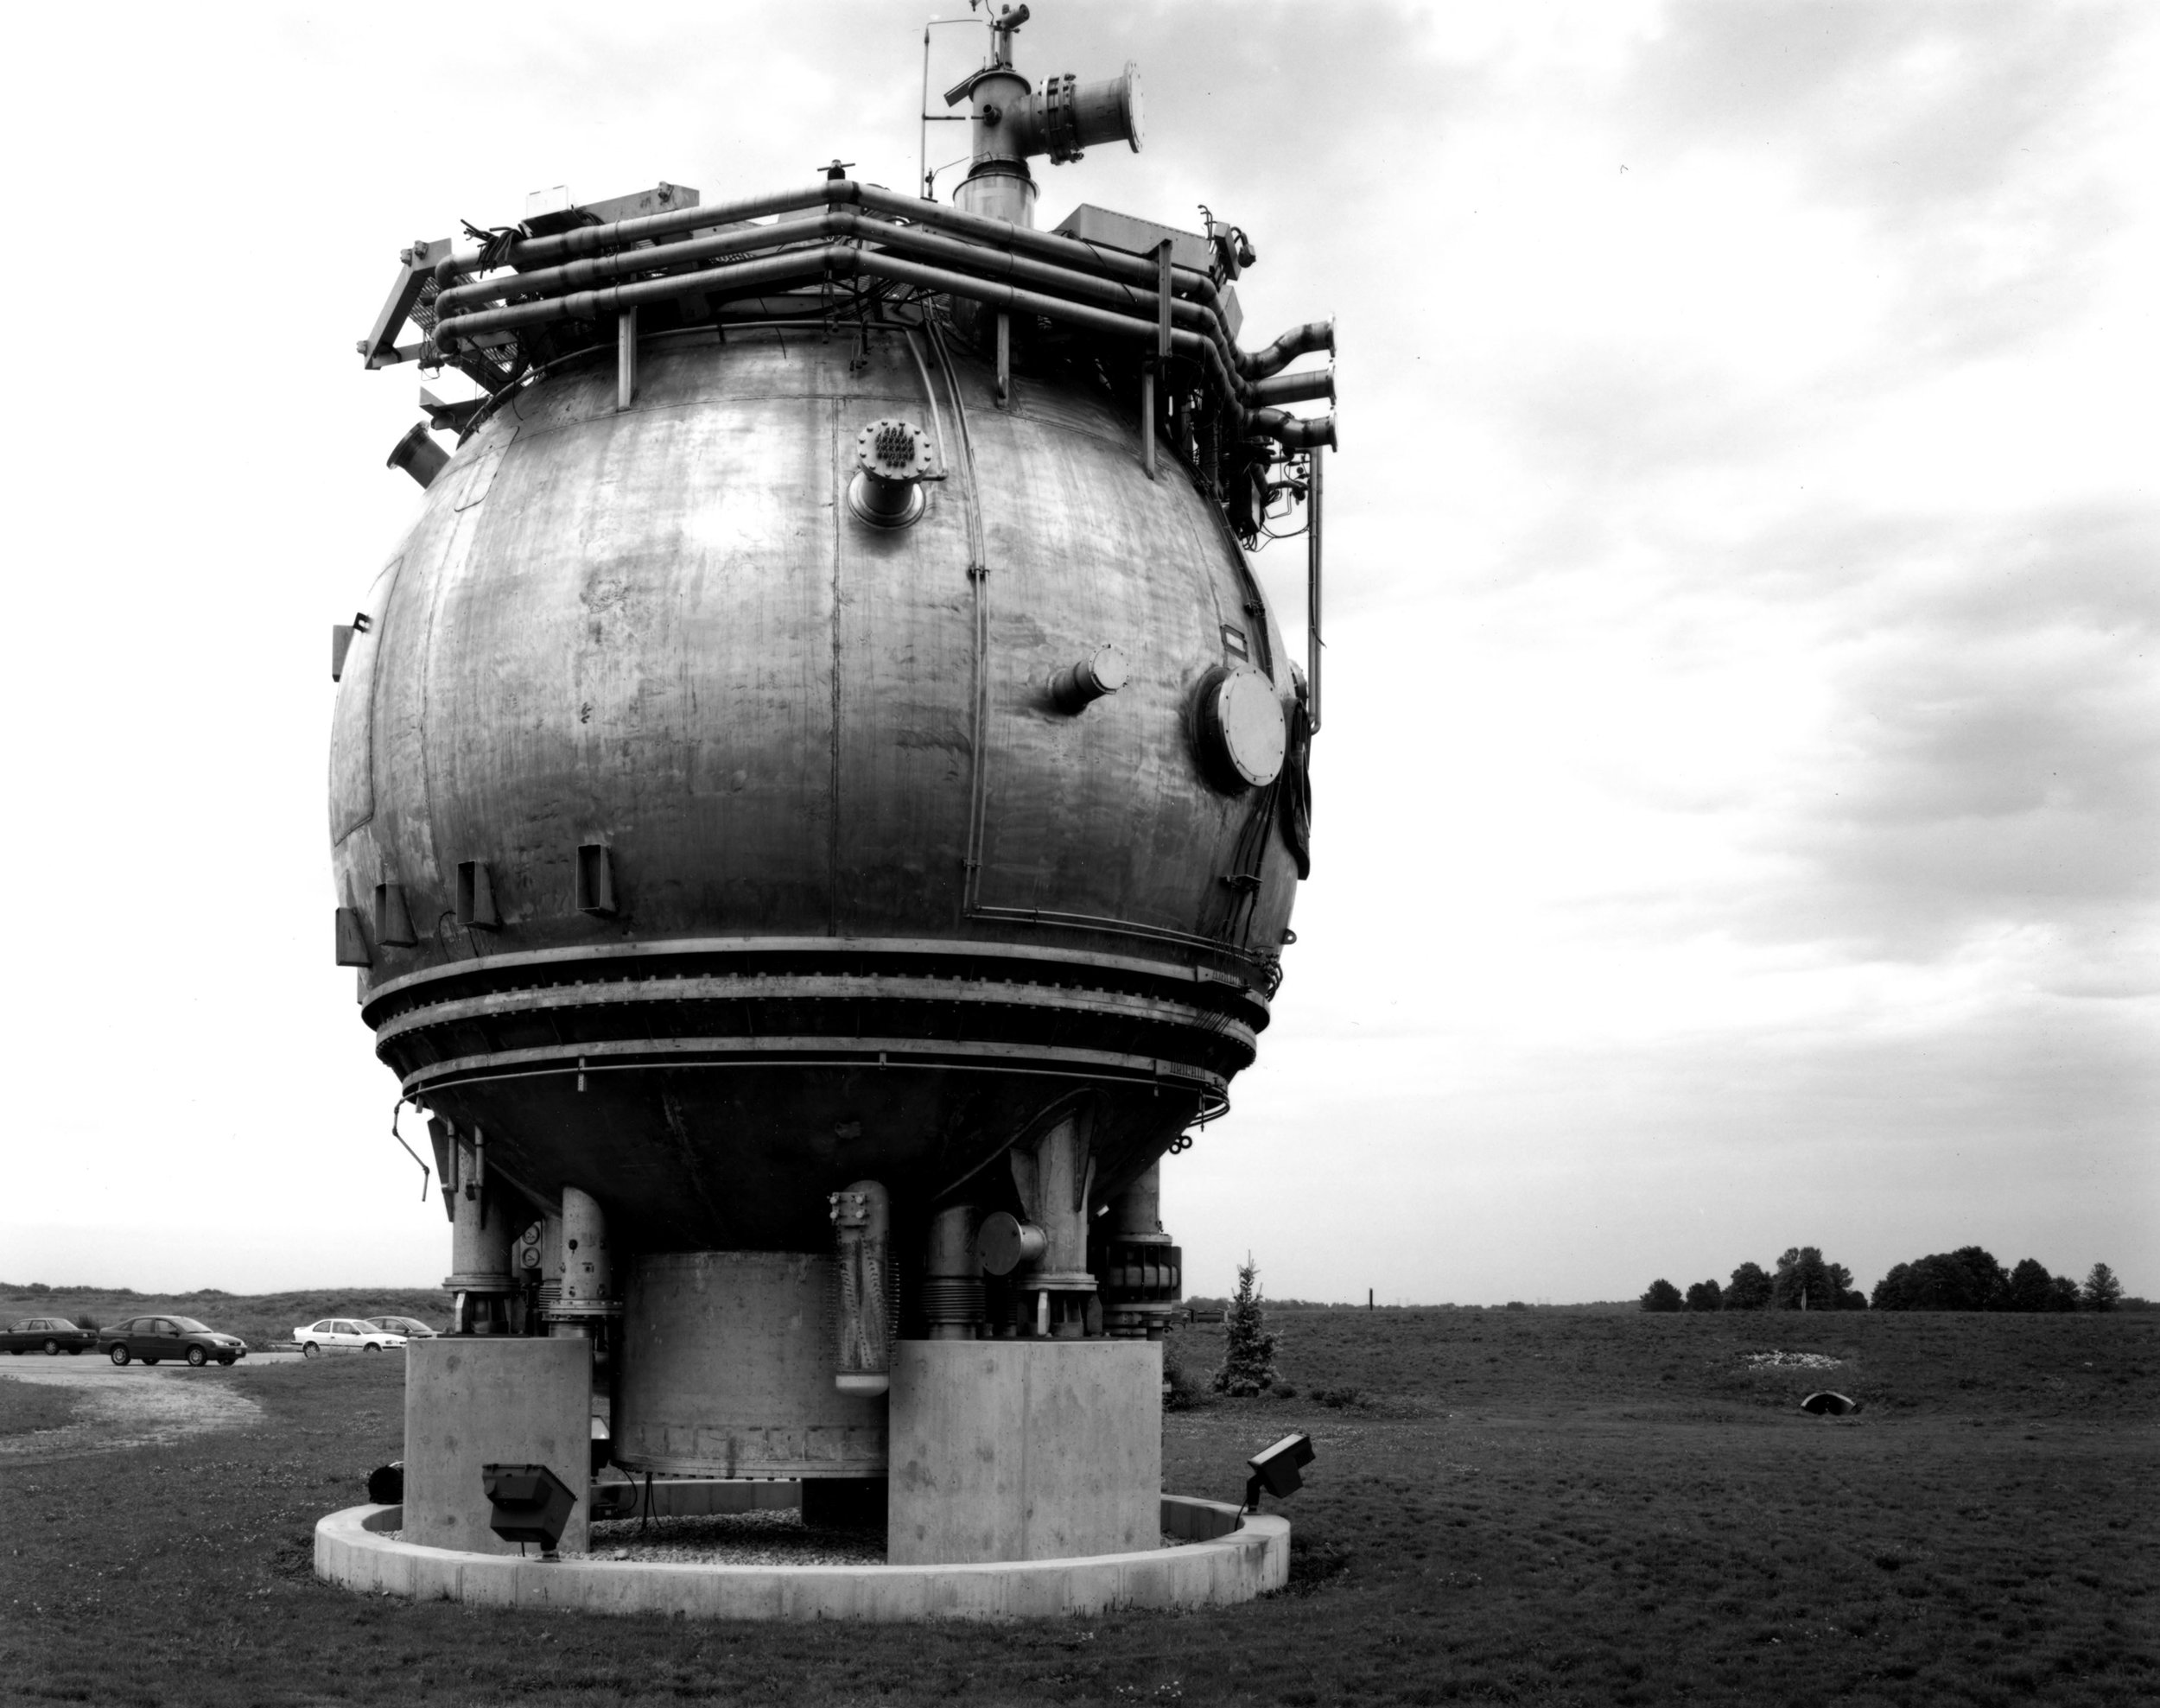 15-foot Bubble Chamber, Fermilab, Illinois, 2006